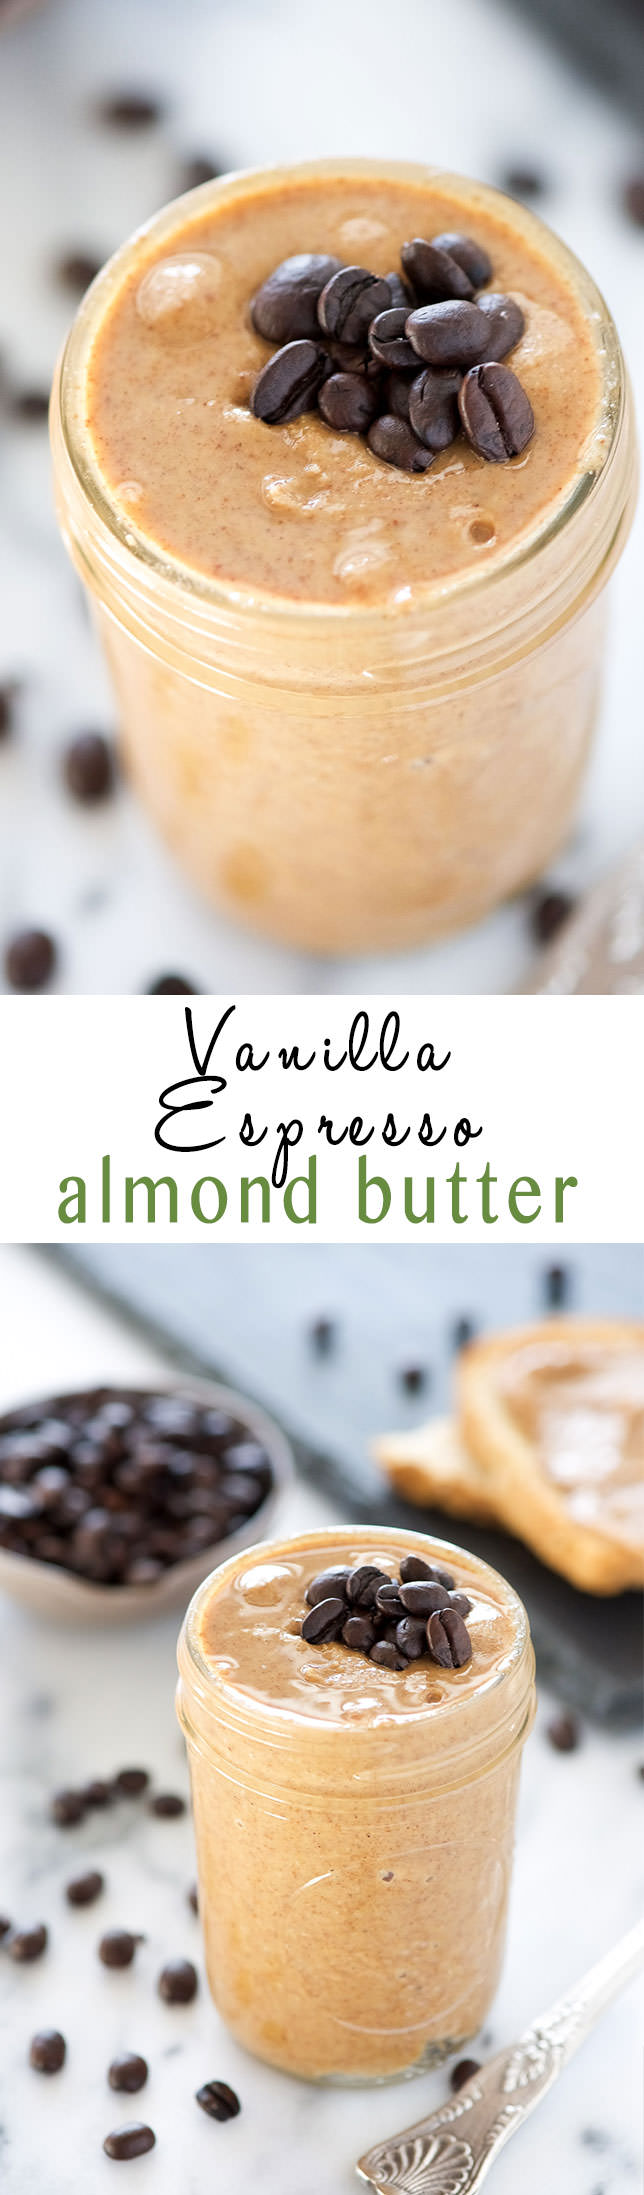 Vanilla Espresso Almond Butter is a homemade version of a store bought favorite! Roasted almonds mixed with vanilla beans and espresso for an energy charged almond butter!